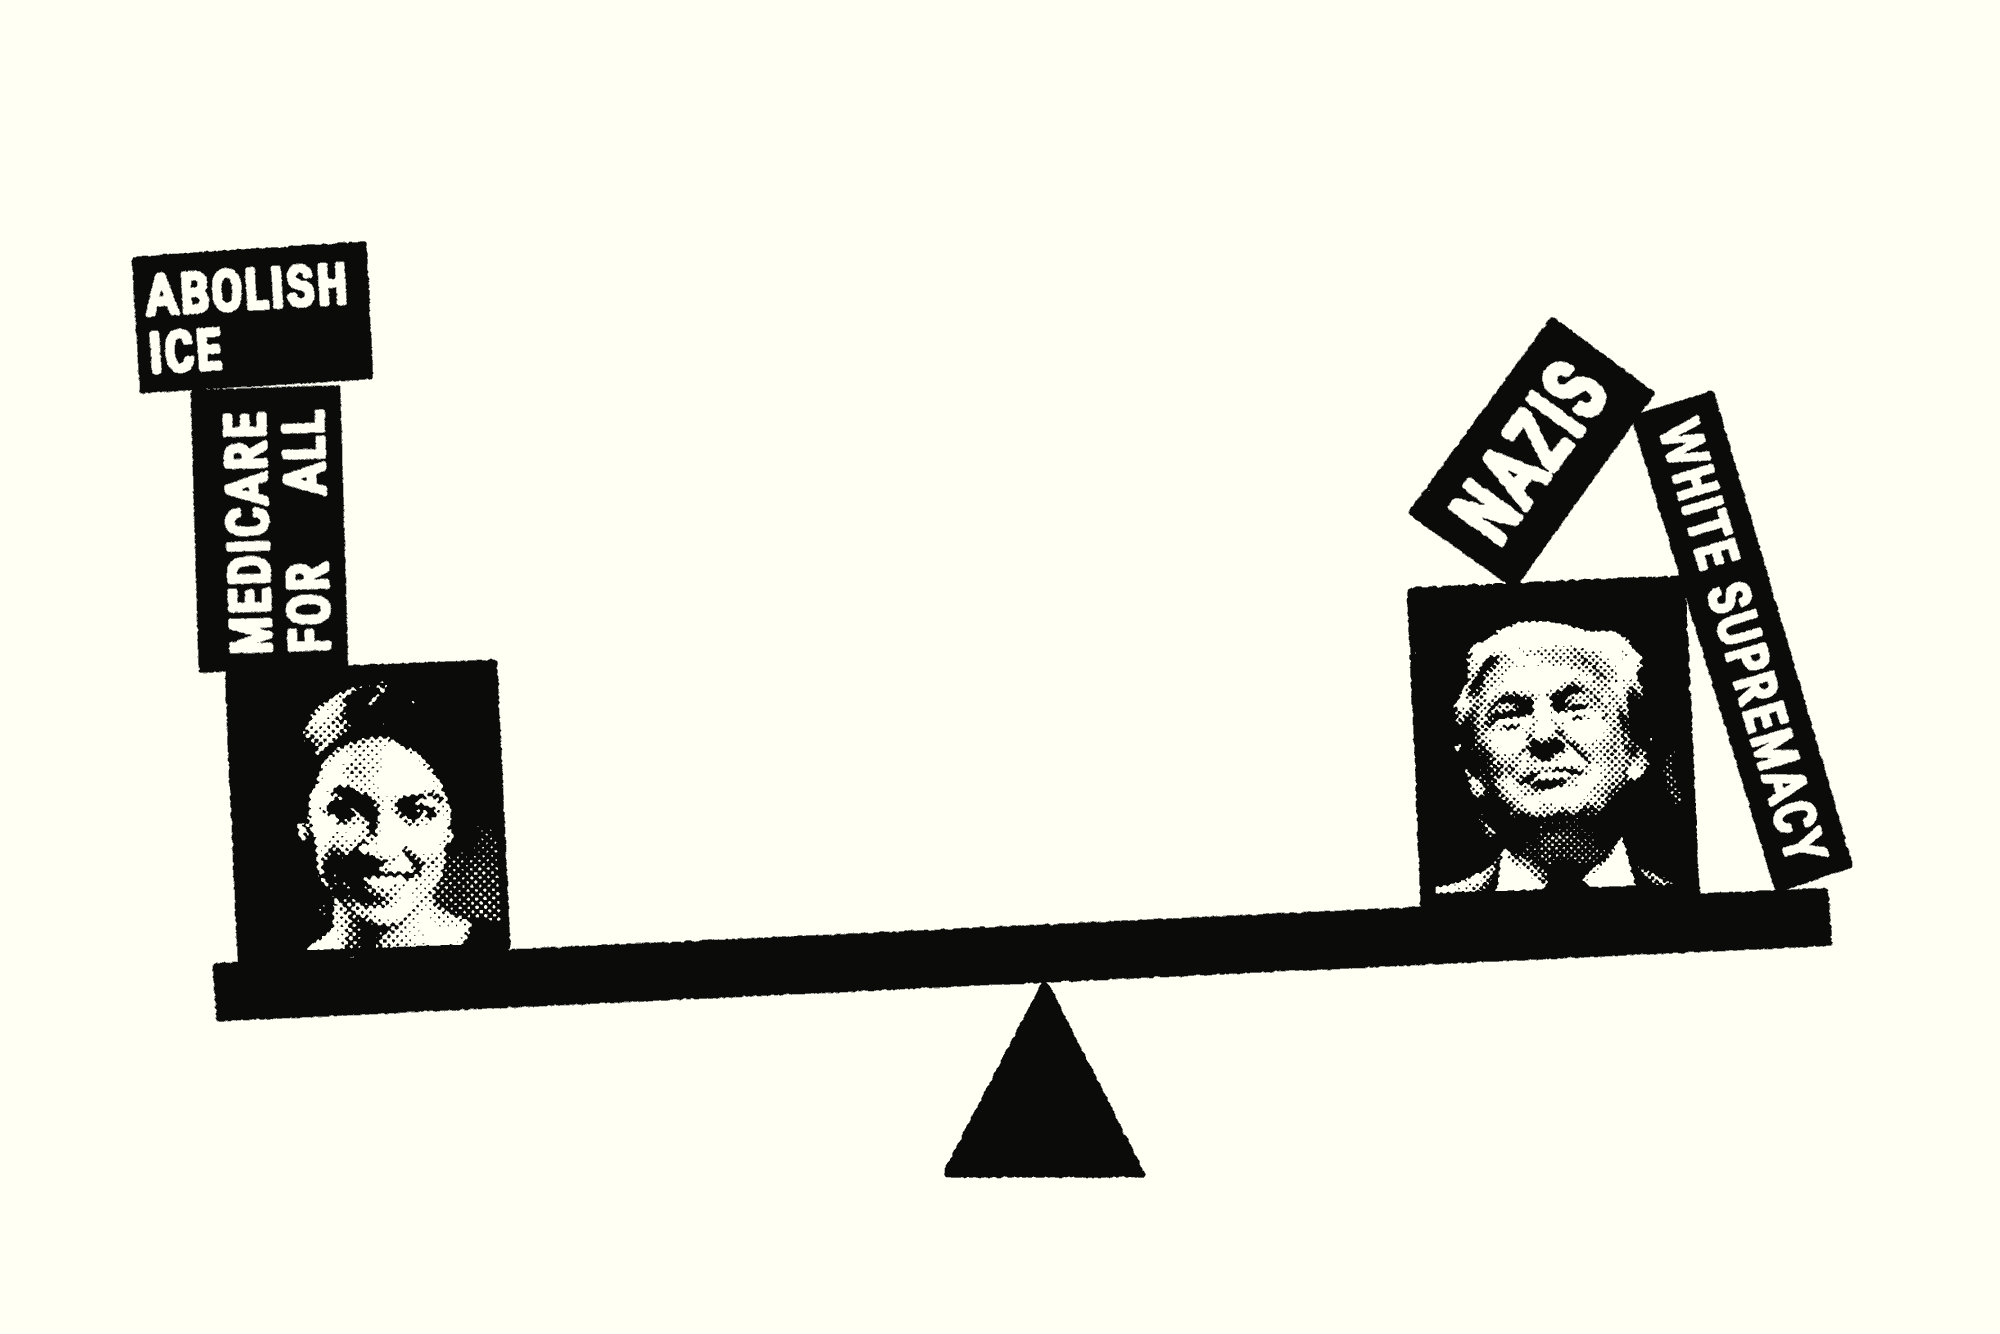 Democrats Are Moving Left. Don't Panic illustration